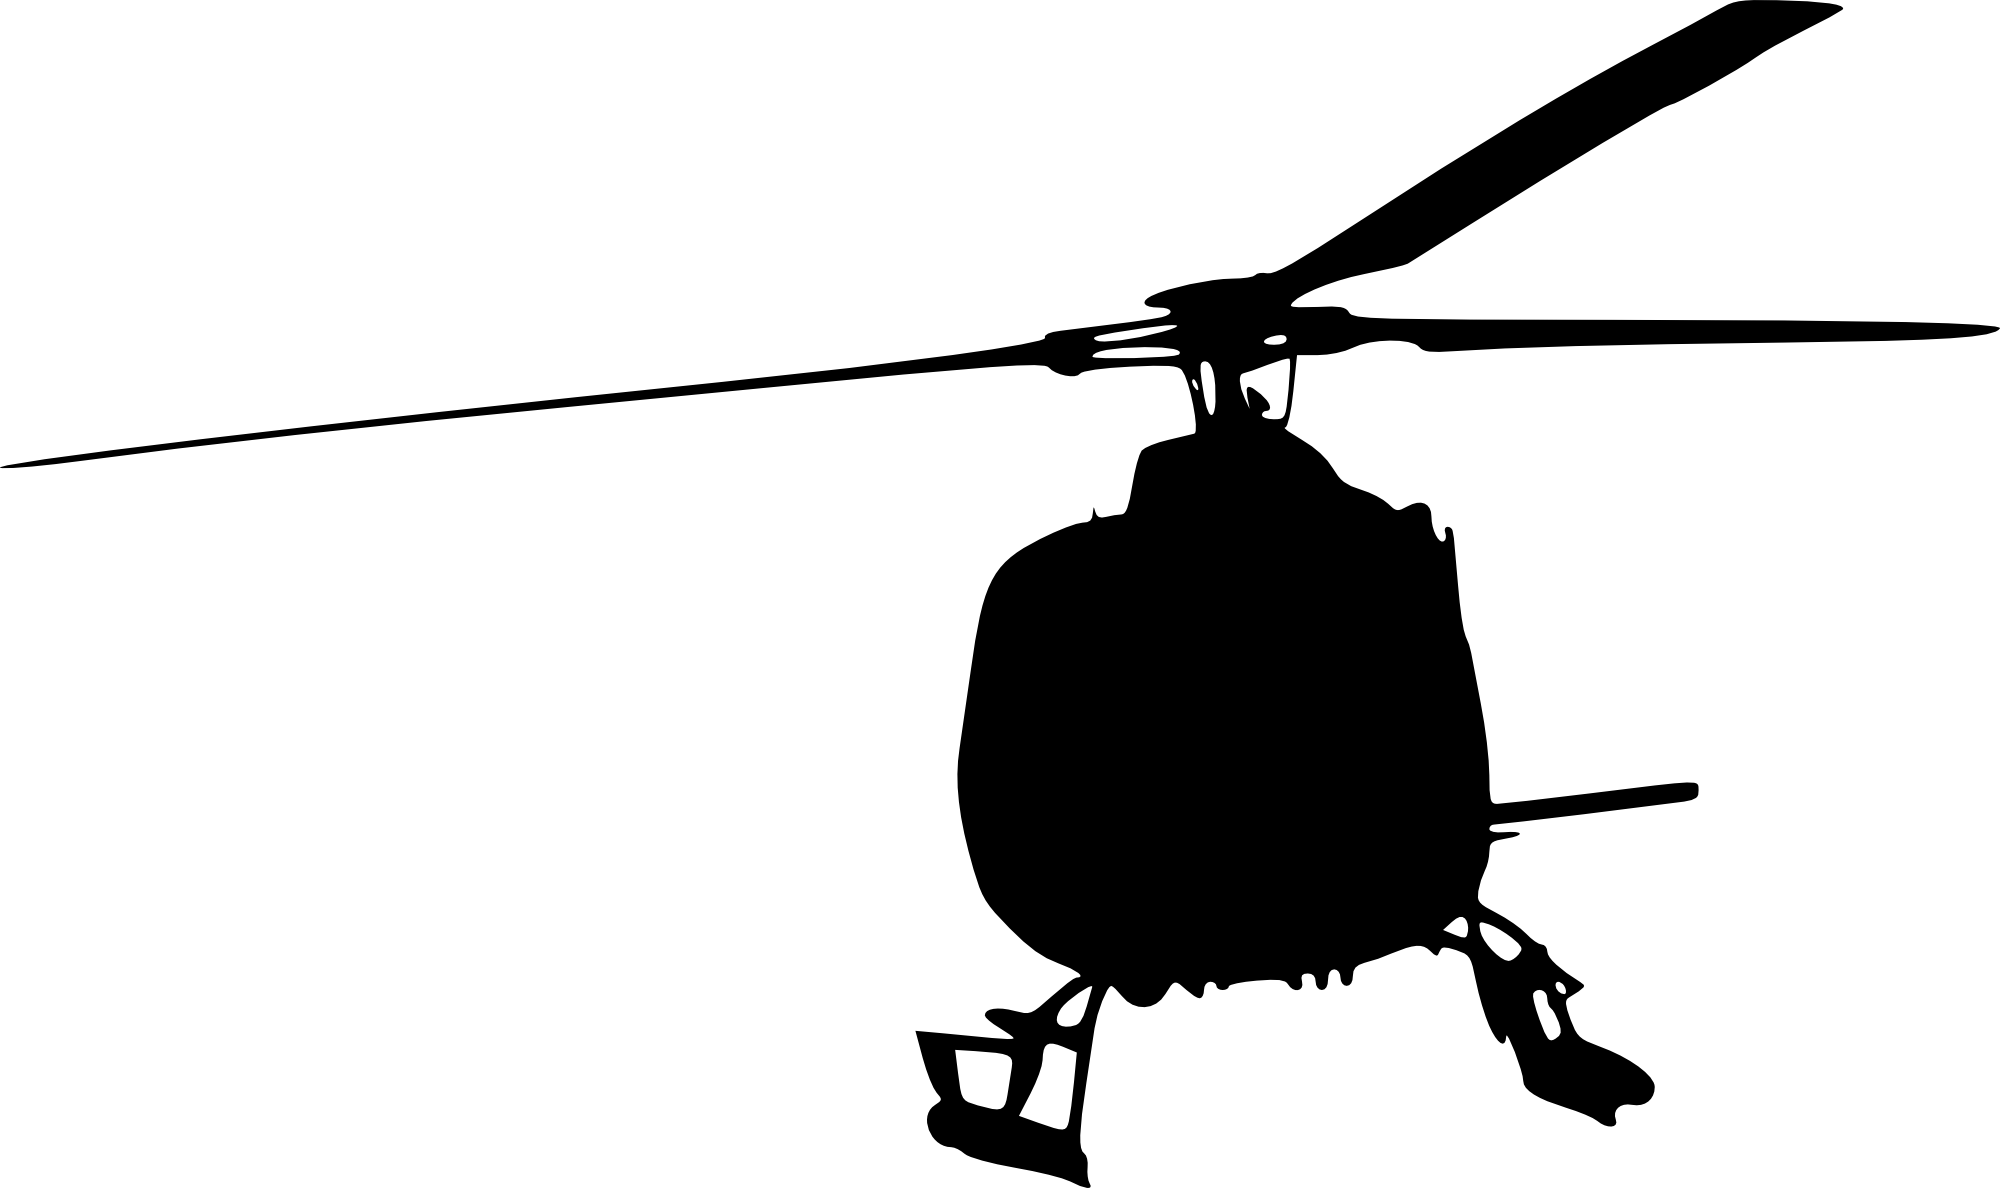 Apache helicopter at getdrawings. Drawing helicopters kid png free download